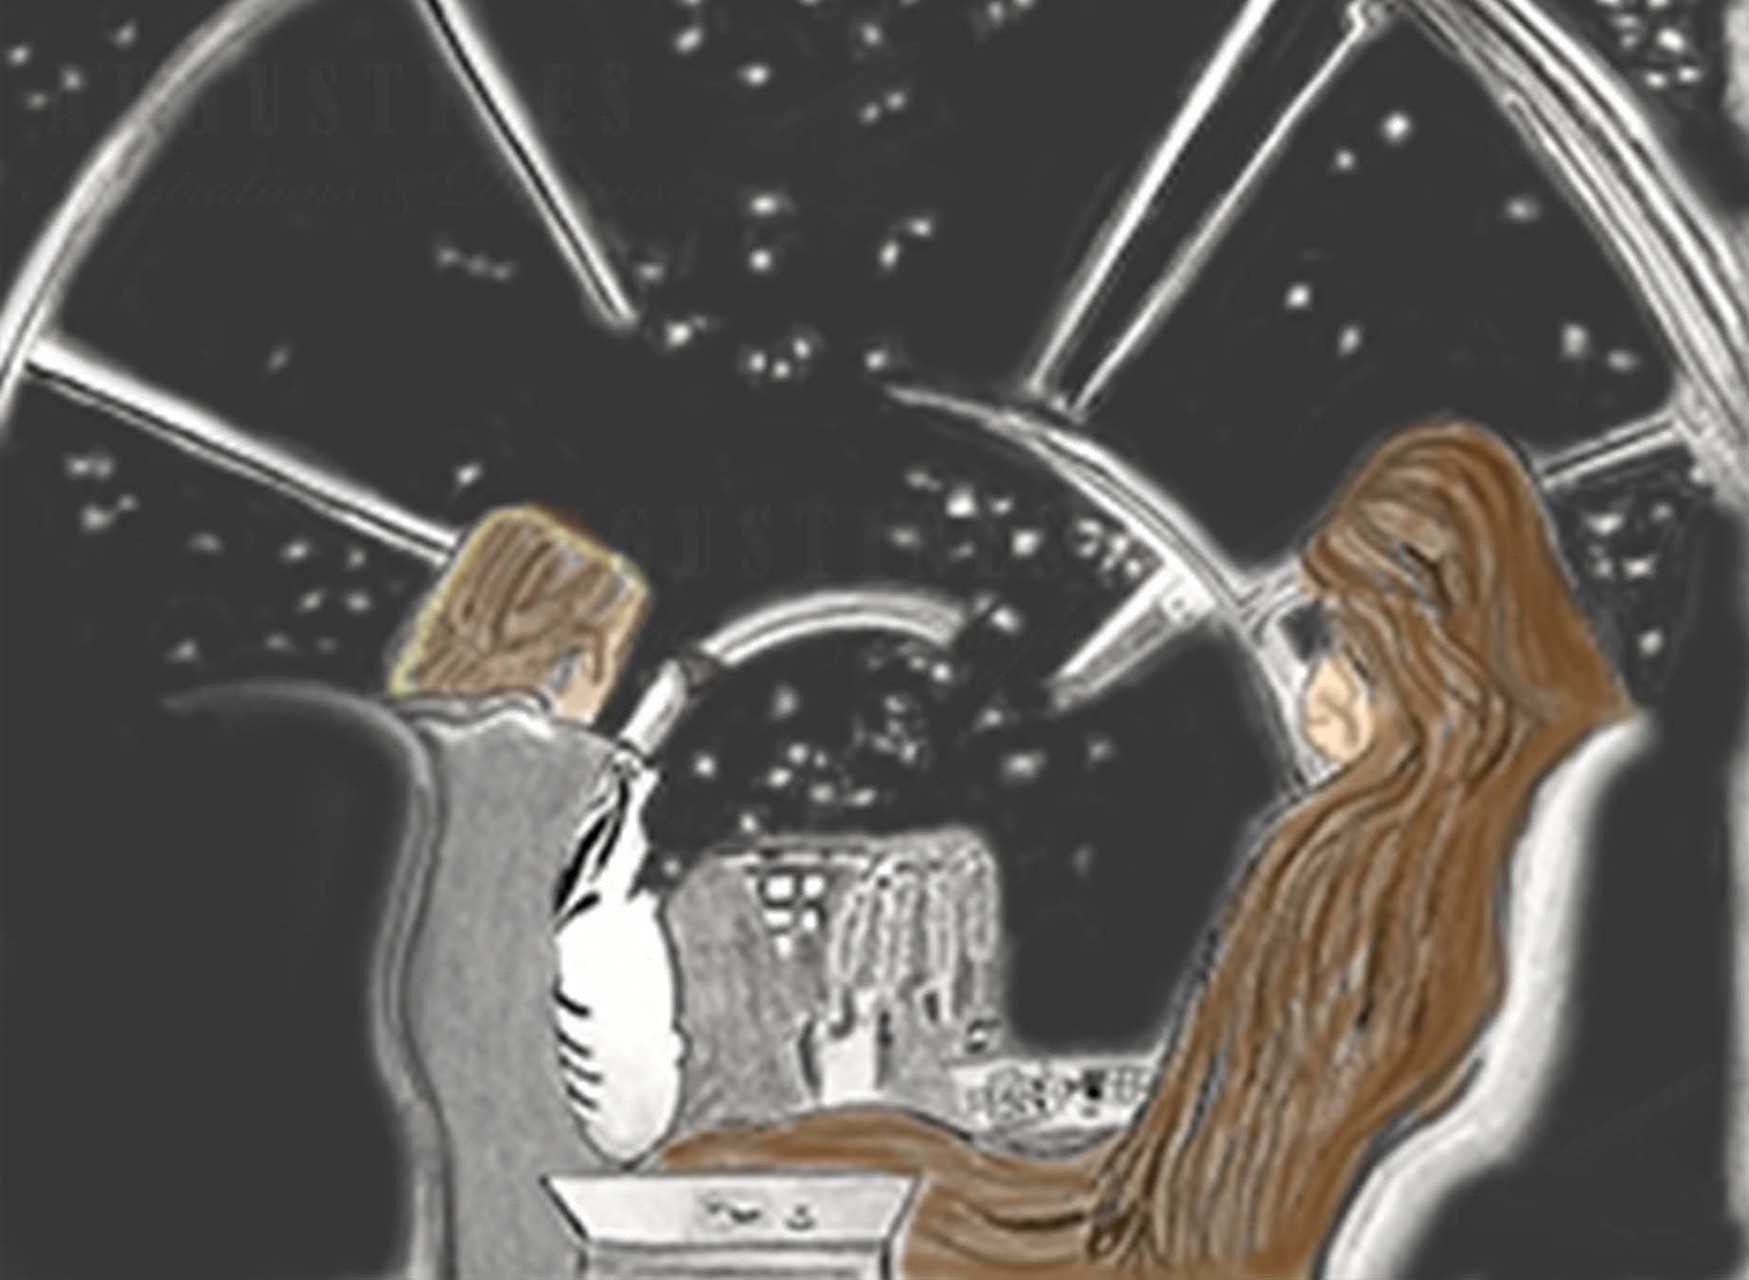 3 of 3 Star Wars, where this  illustration is a scene from in the cockpit of Han Solo's Millennium Falcon spaceship with Han Solo and Chewbacca. This was done in graphite pencils and ink, and later enhanced digitally in Photoshop. Created 1/15.